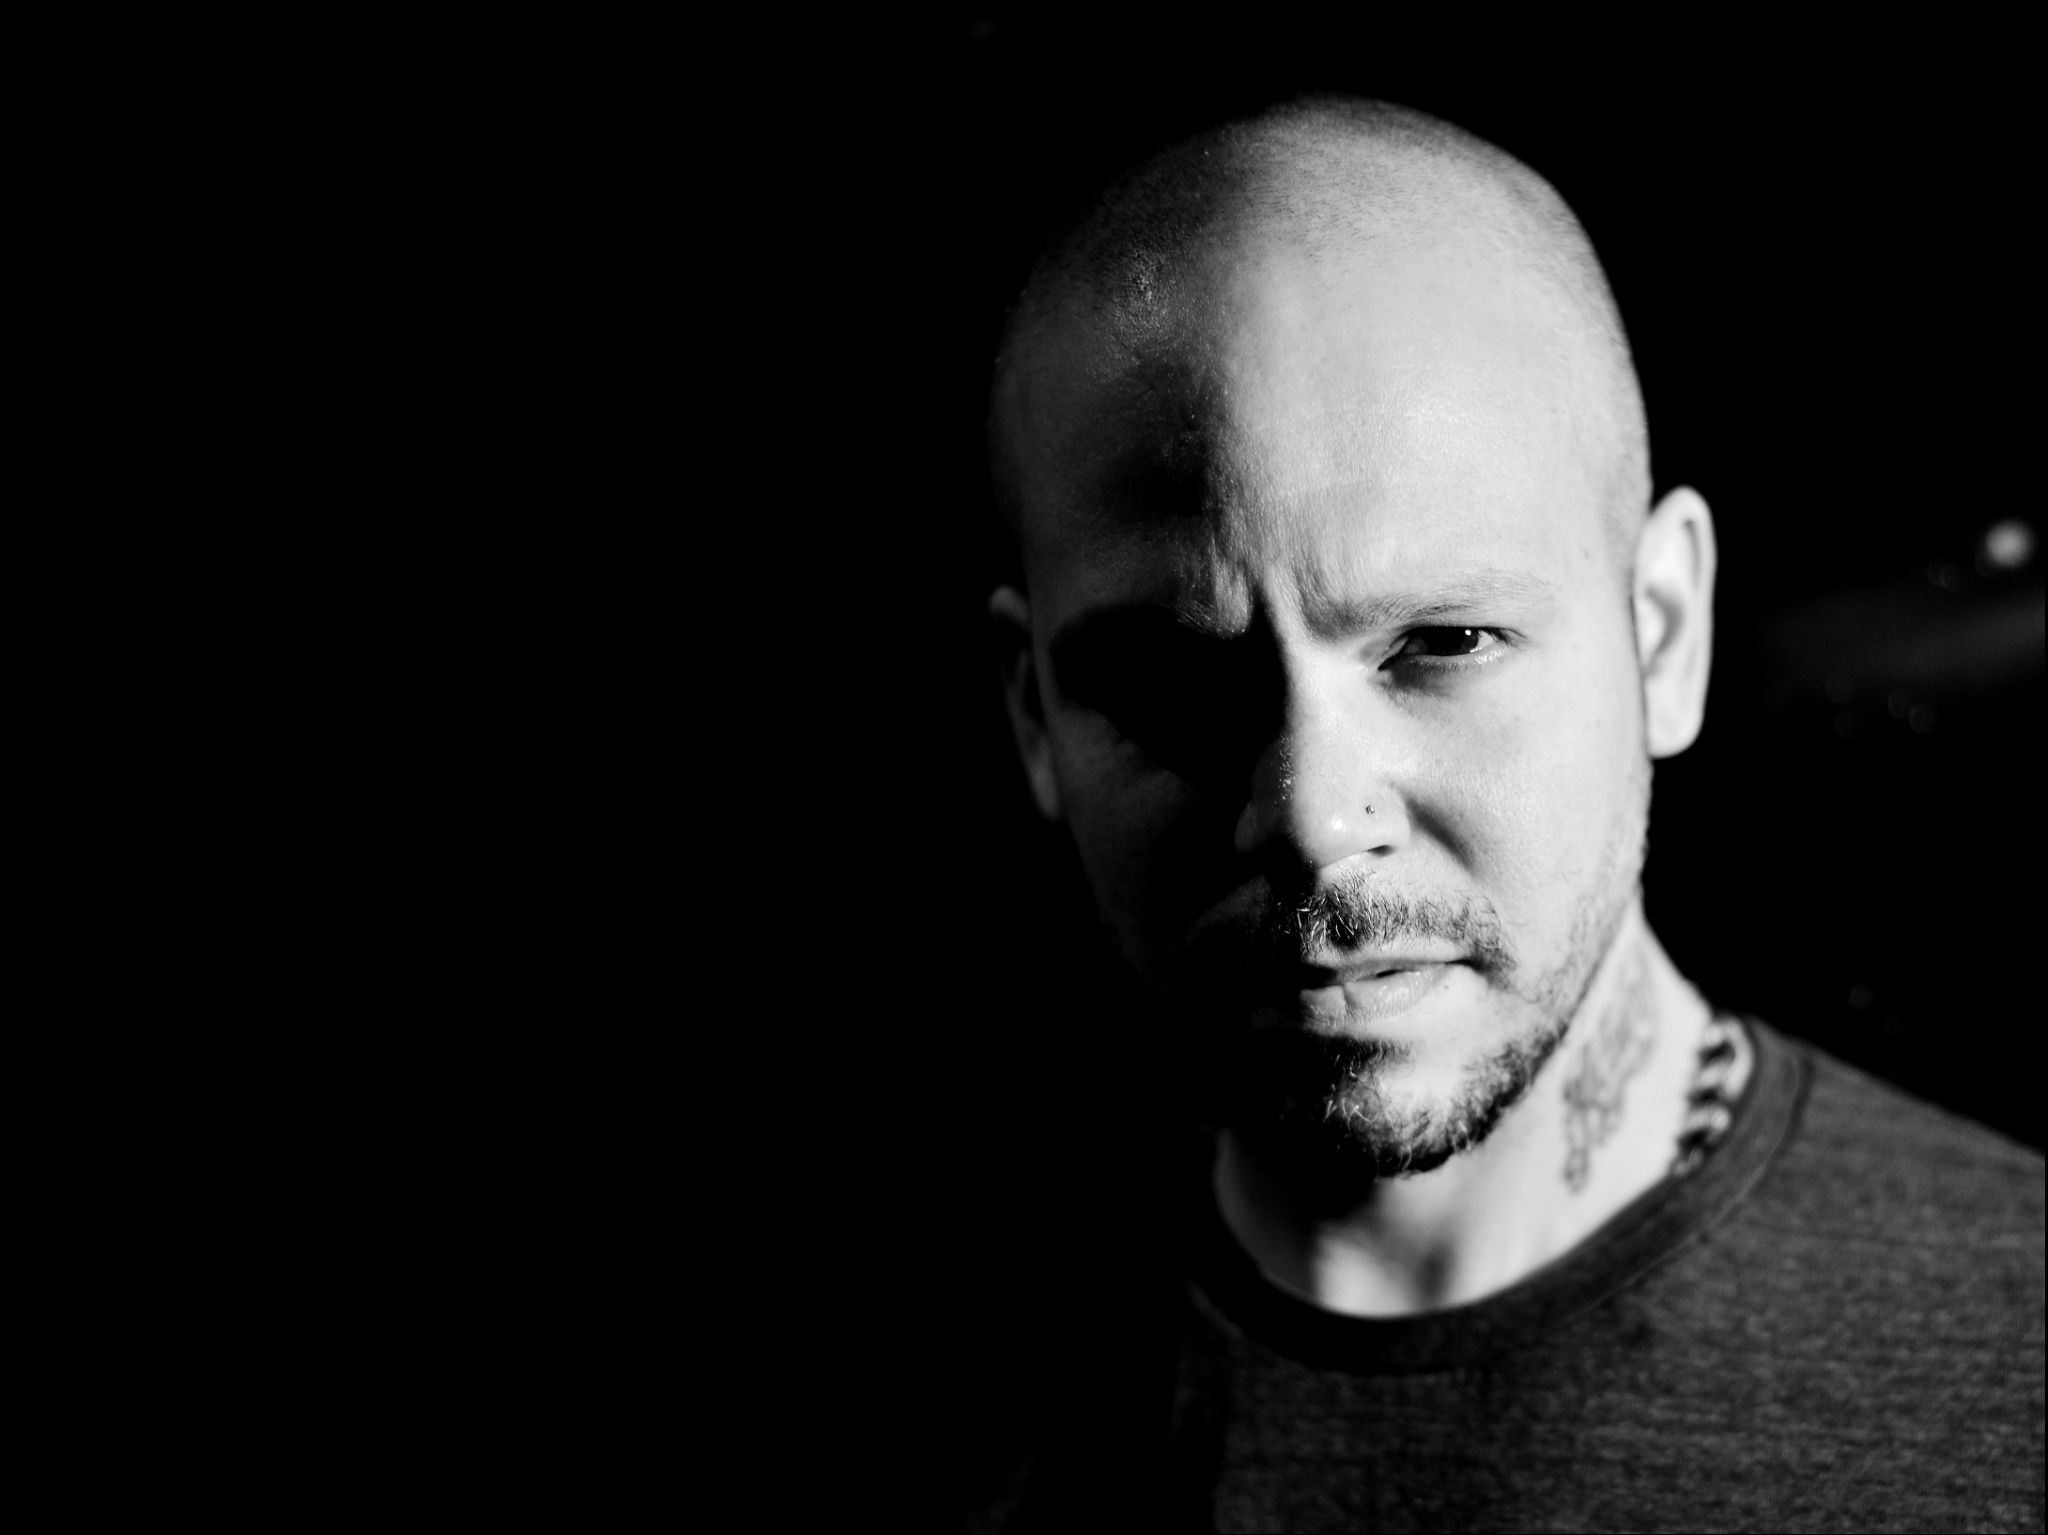 Residente presenta su primer disco como solista y un documental